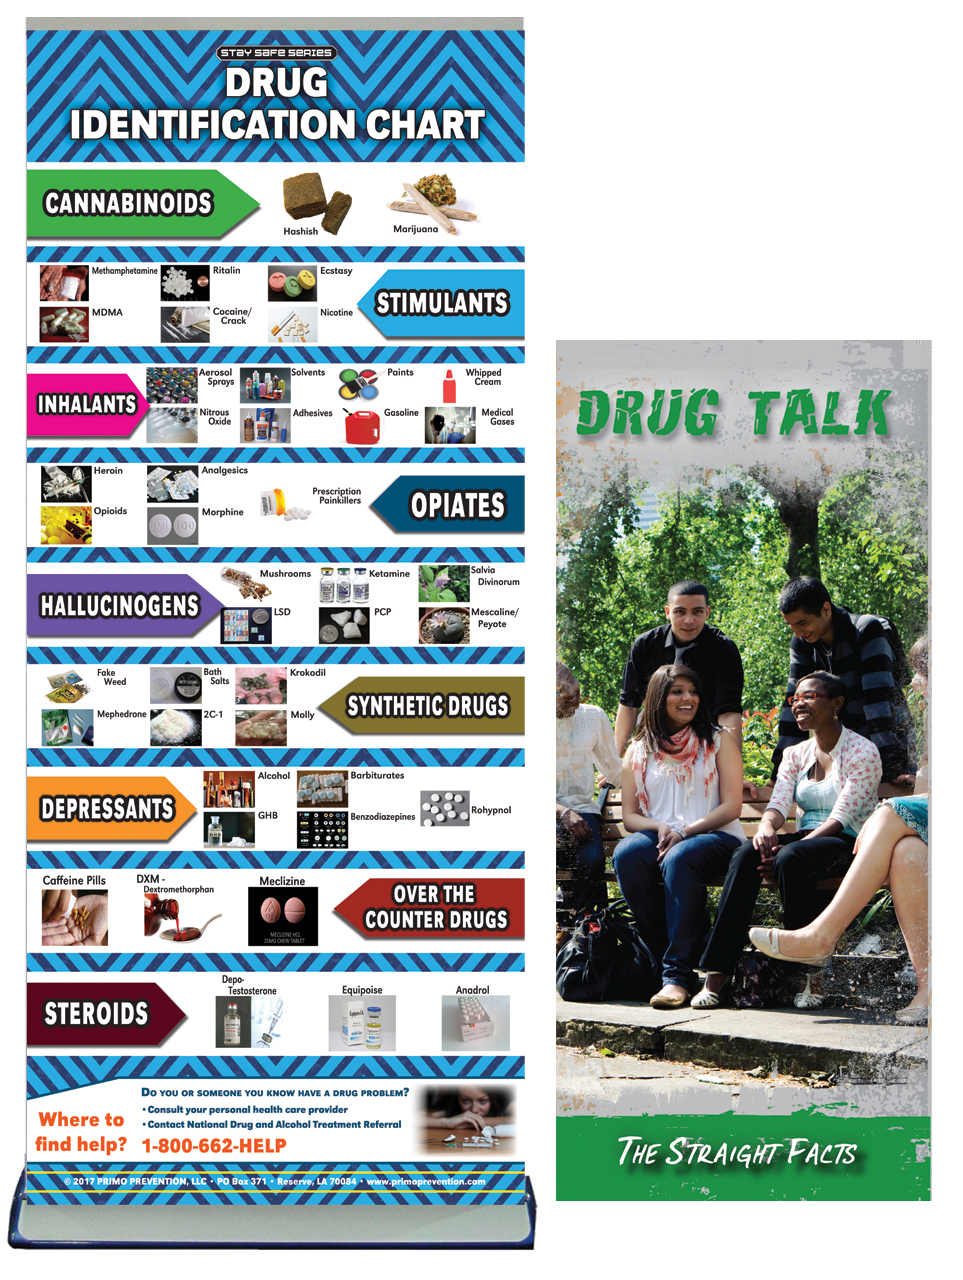 Drug-Identification-Chart-Retractable-Banner-BANNER-PKG (002)